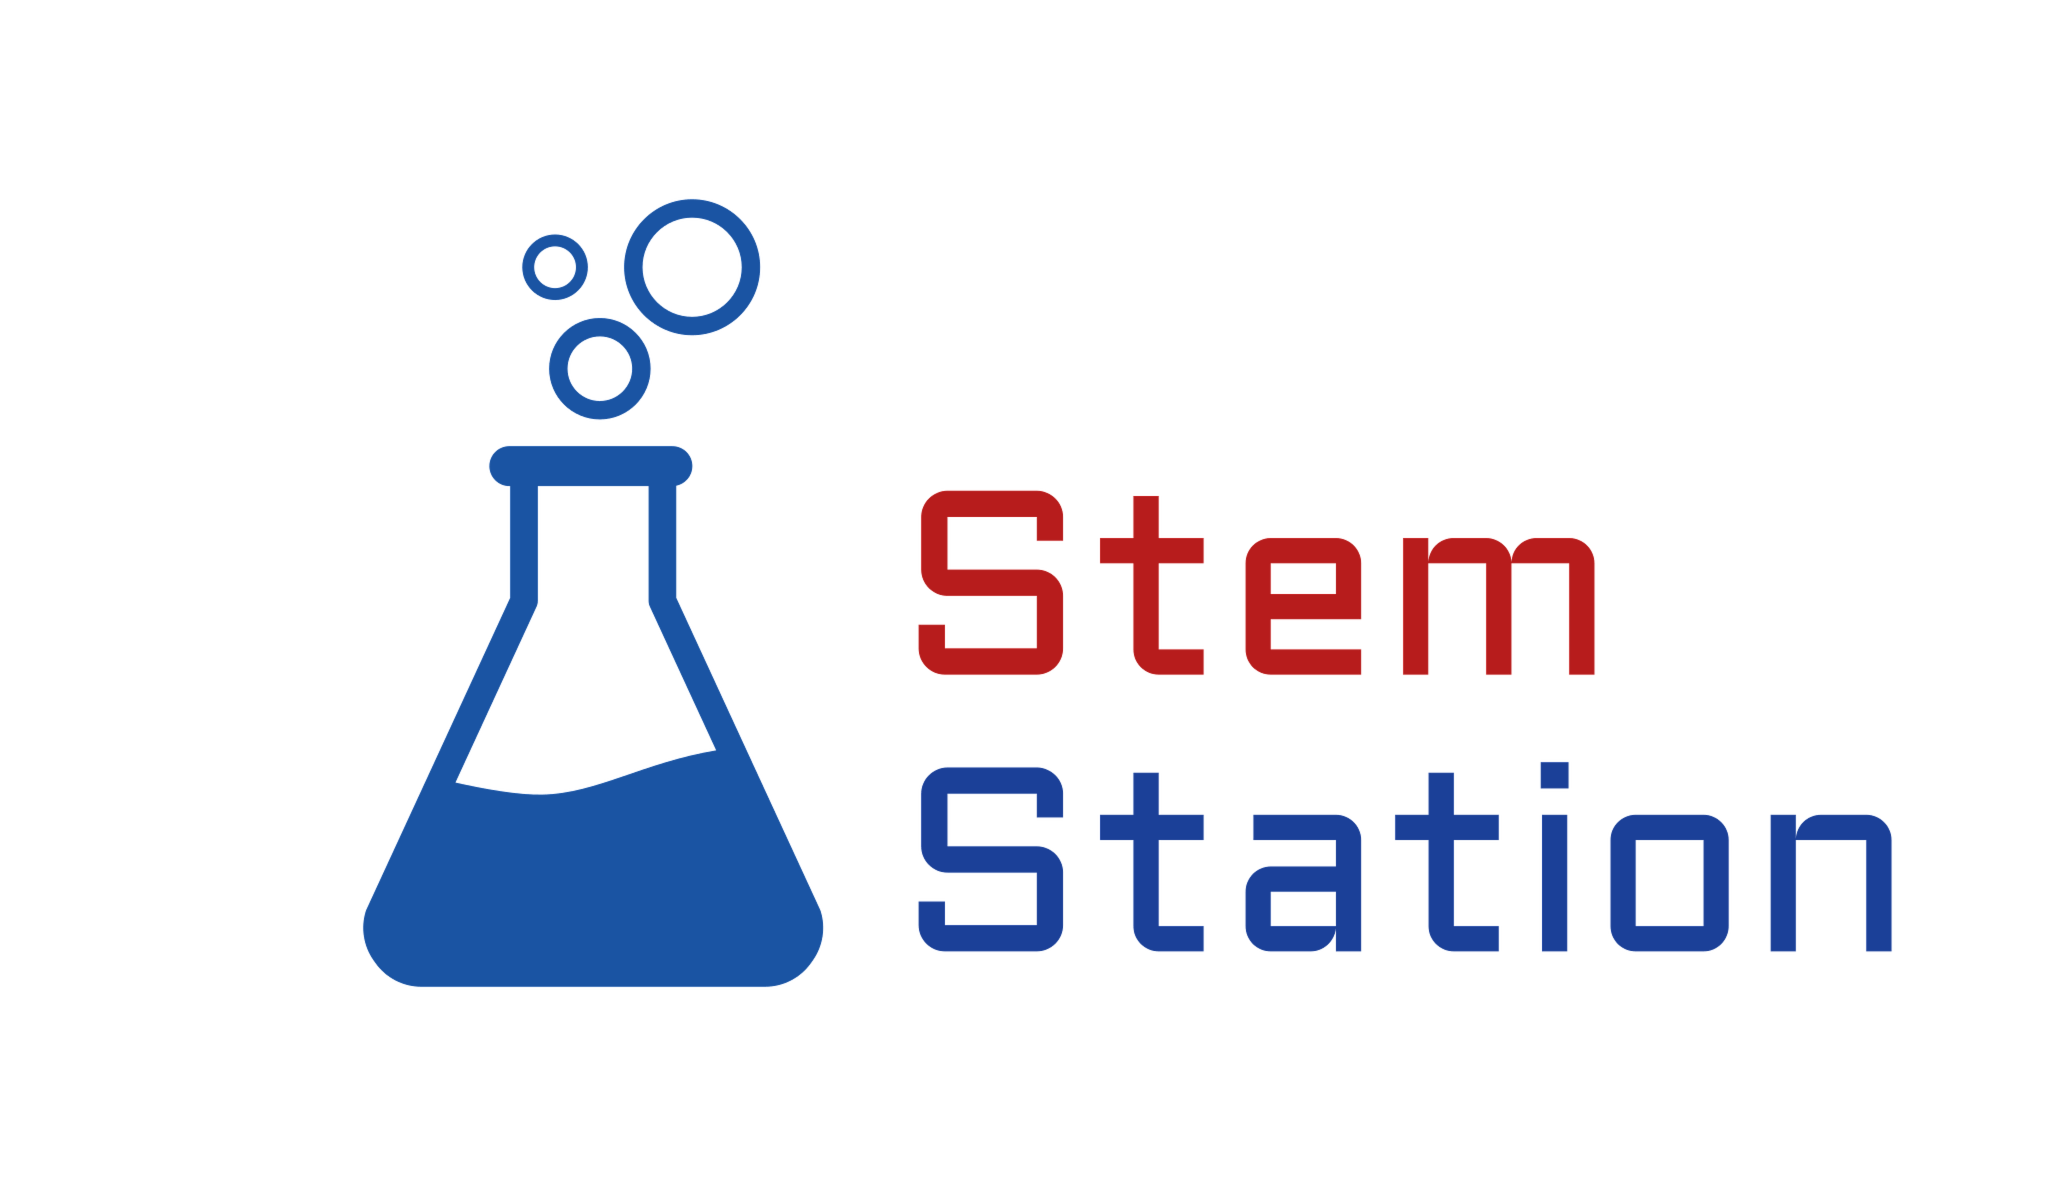 Stem Station Ltd